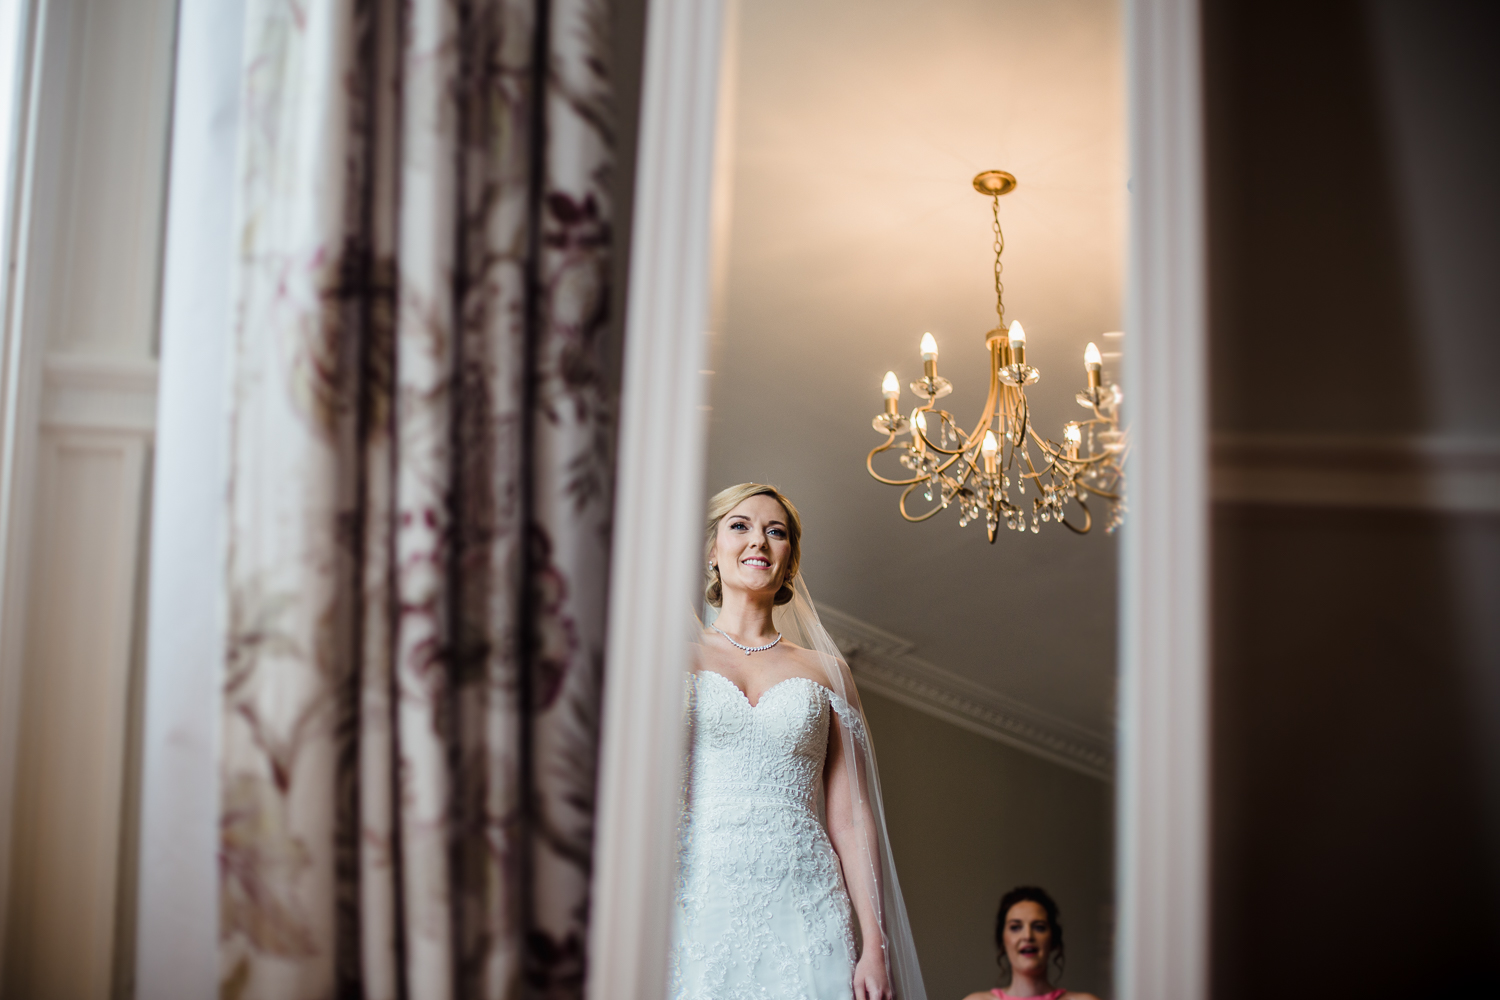 NATURAL_WEDDING_PHOTOGRAPHY_KATHRYN_CALRKE_MCLEOD-23.jpg